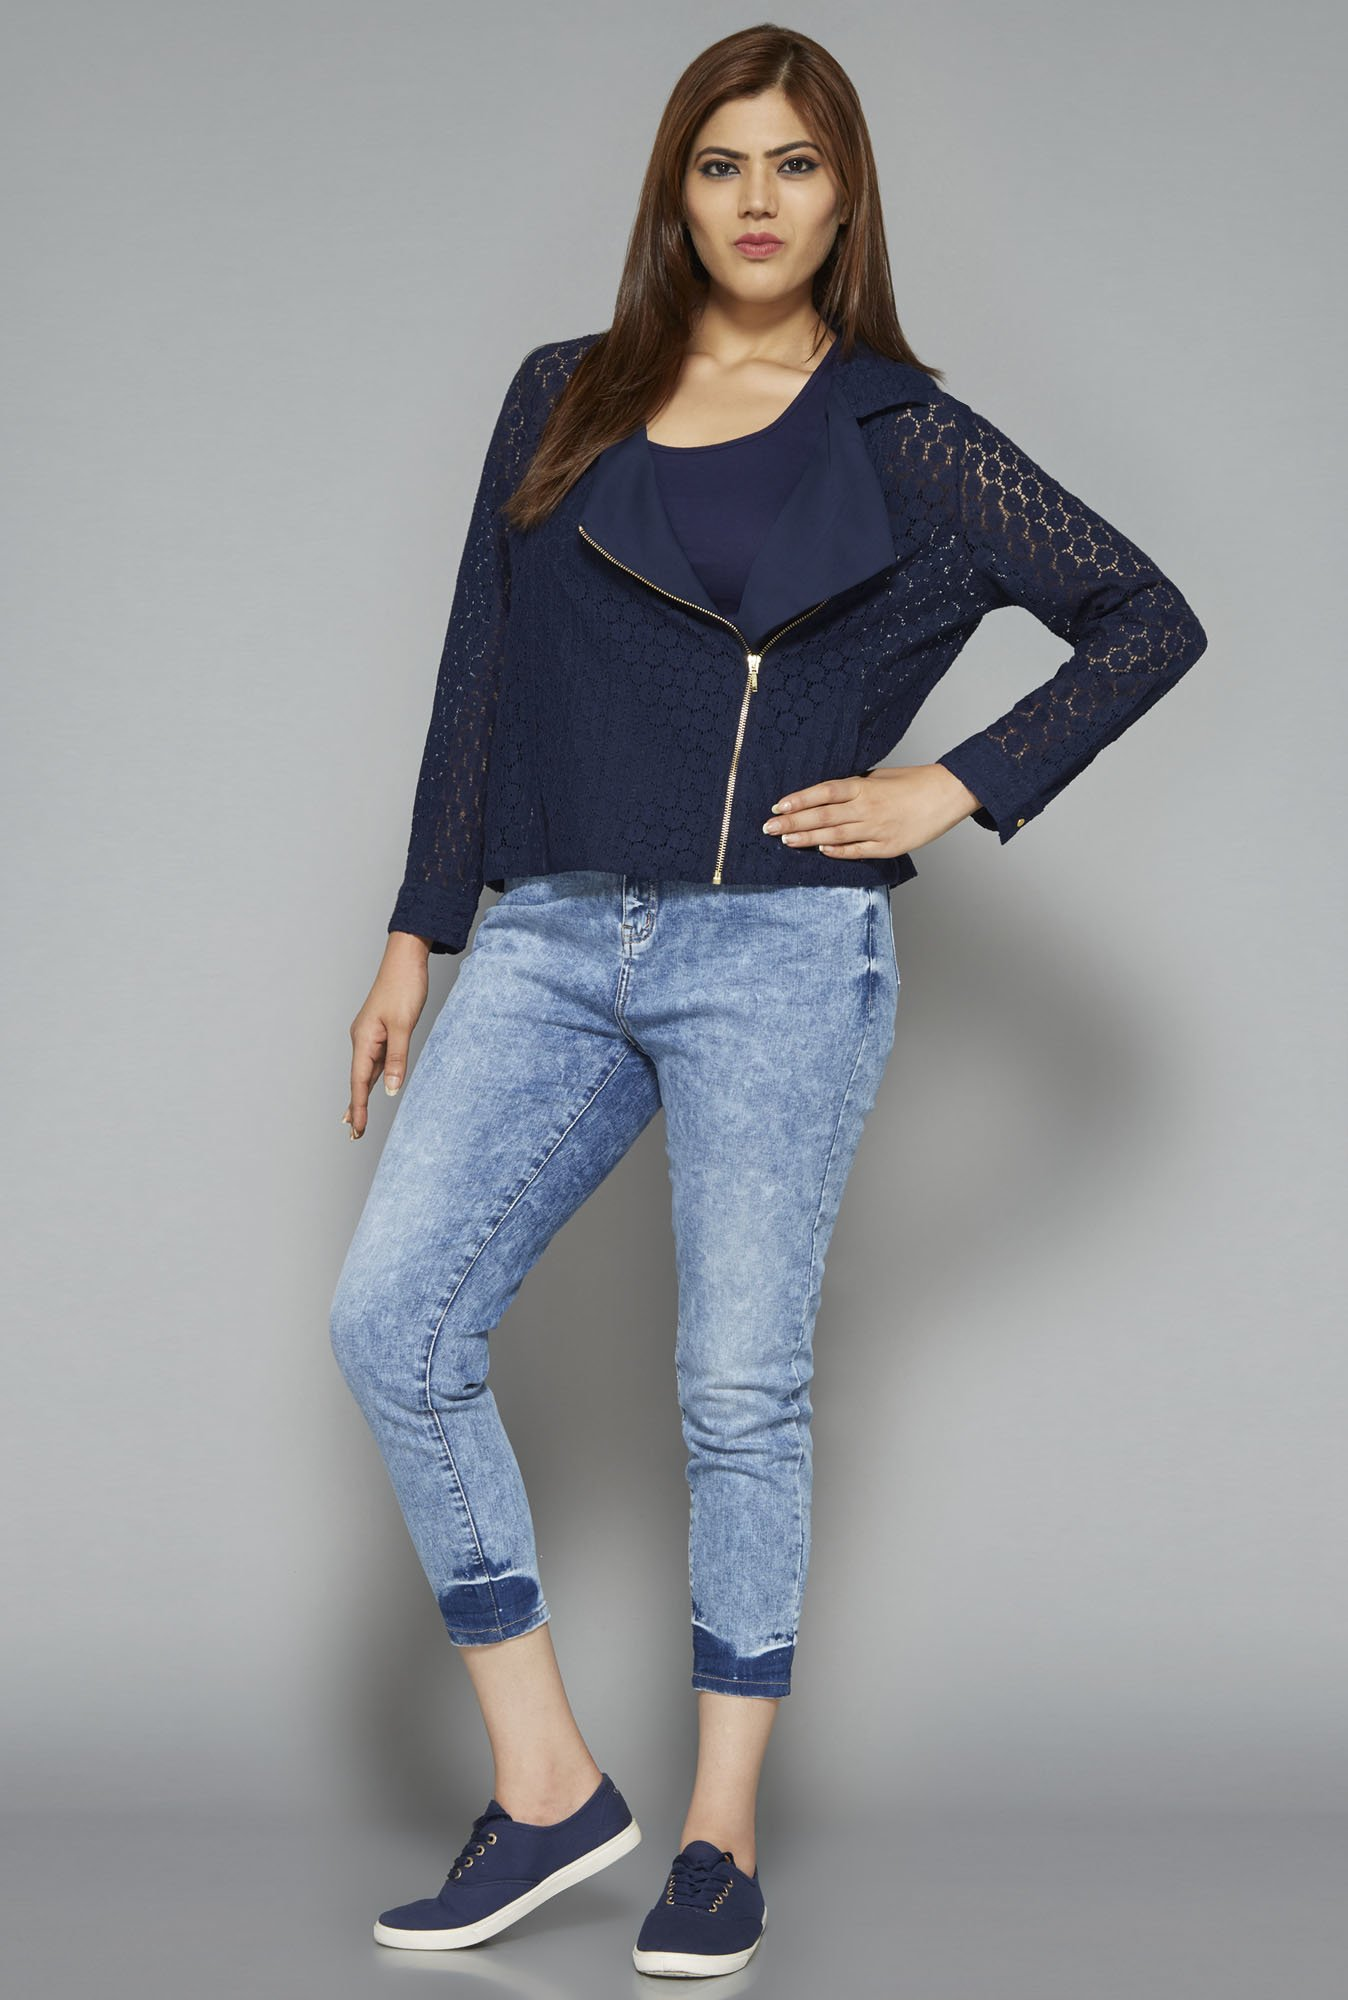 Sassy Soda by Westside Navy Gilly Jacket